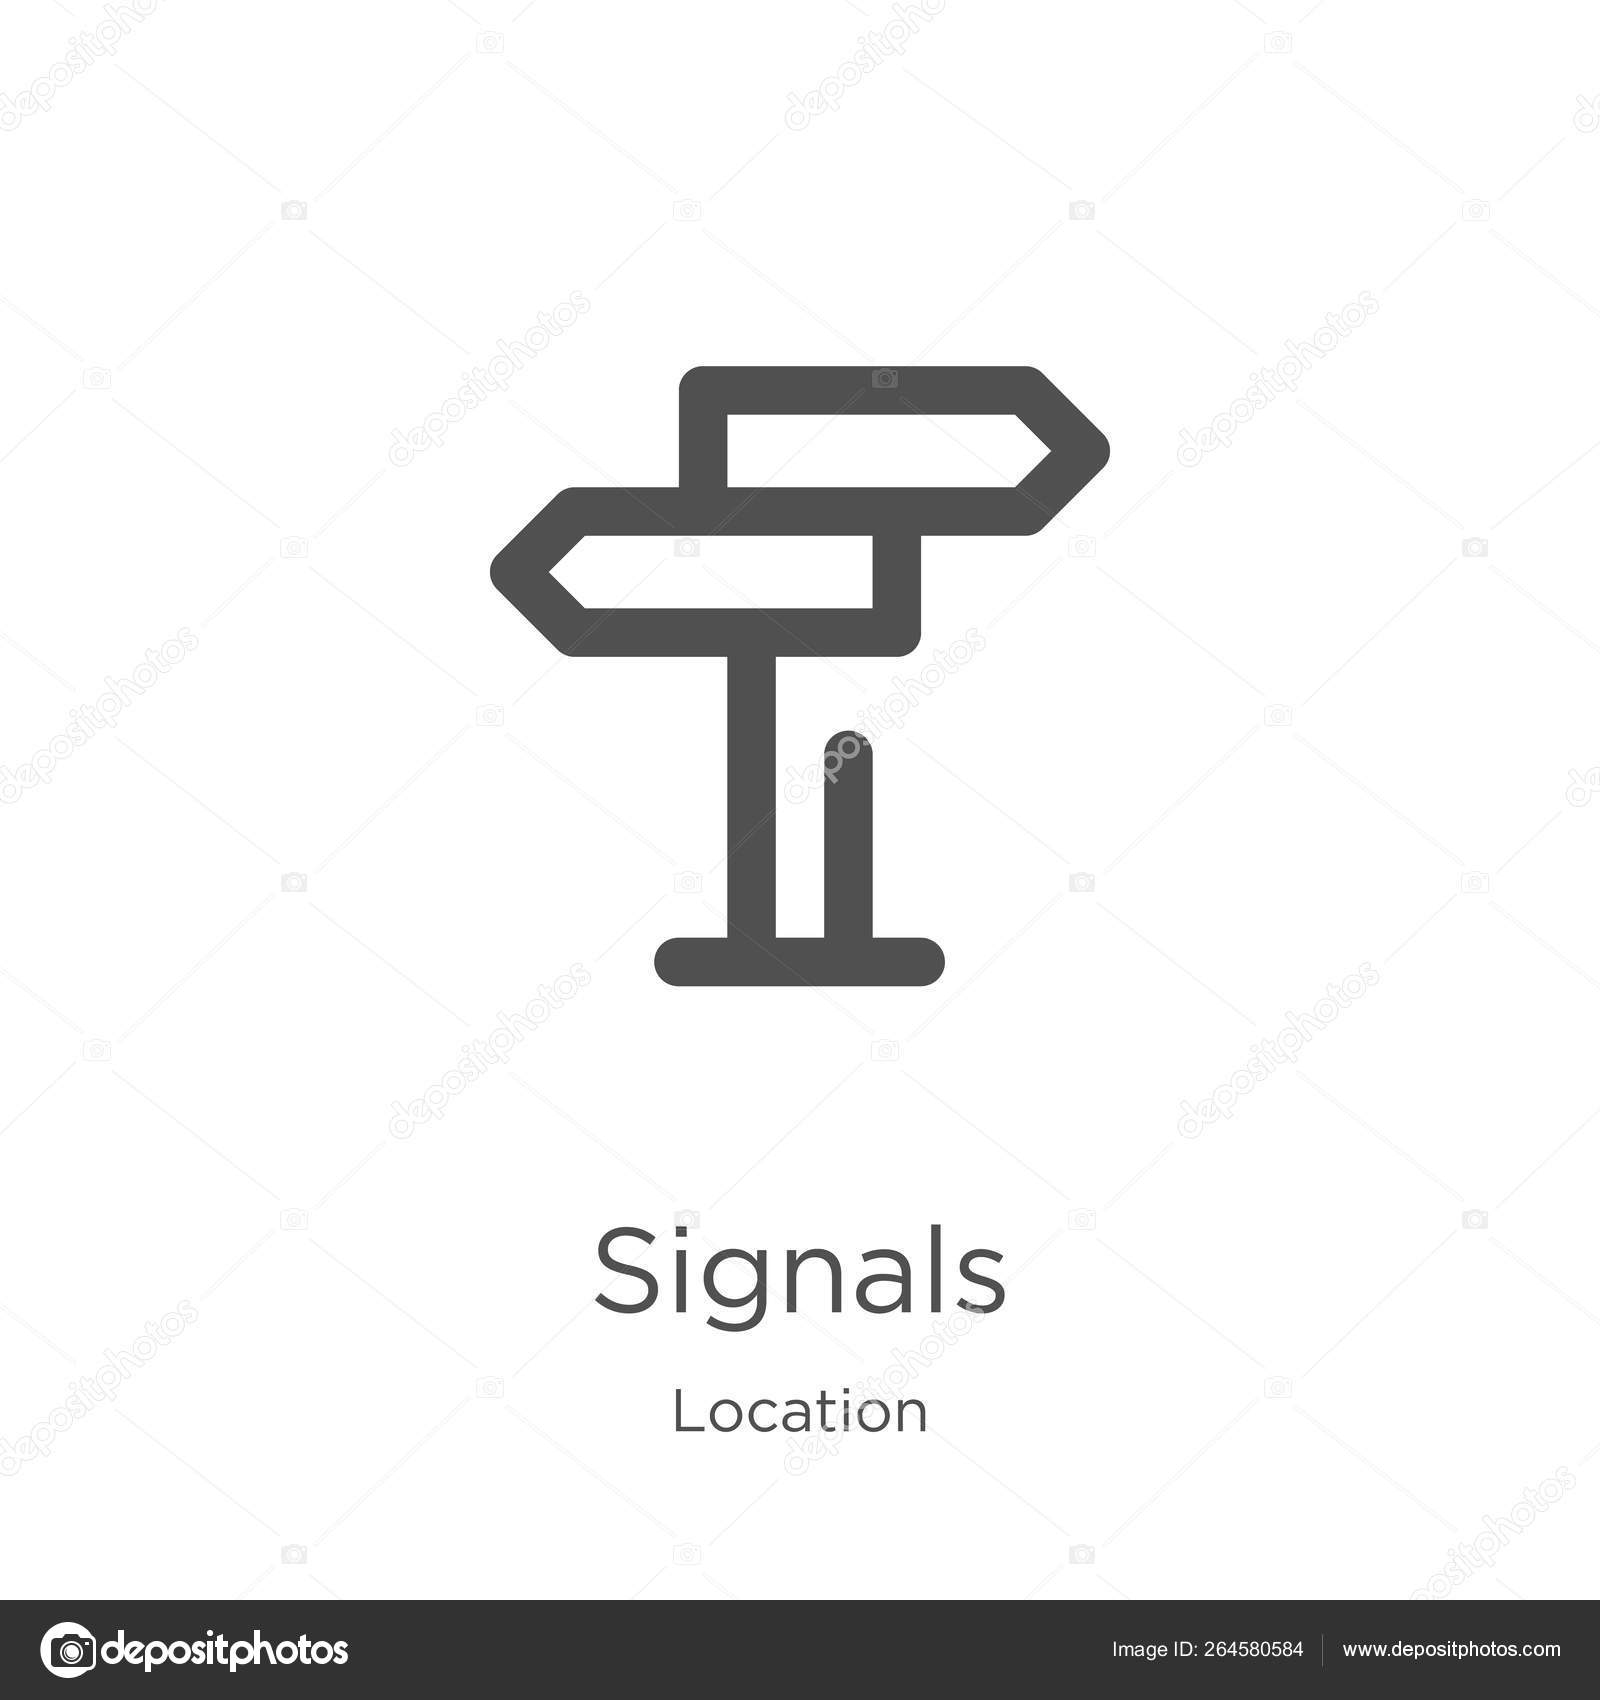 signals icon vector from location collection  Thin line